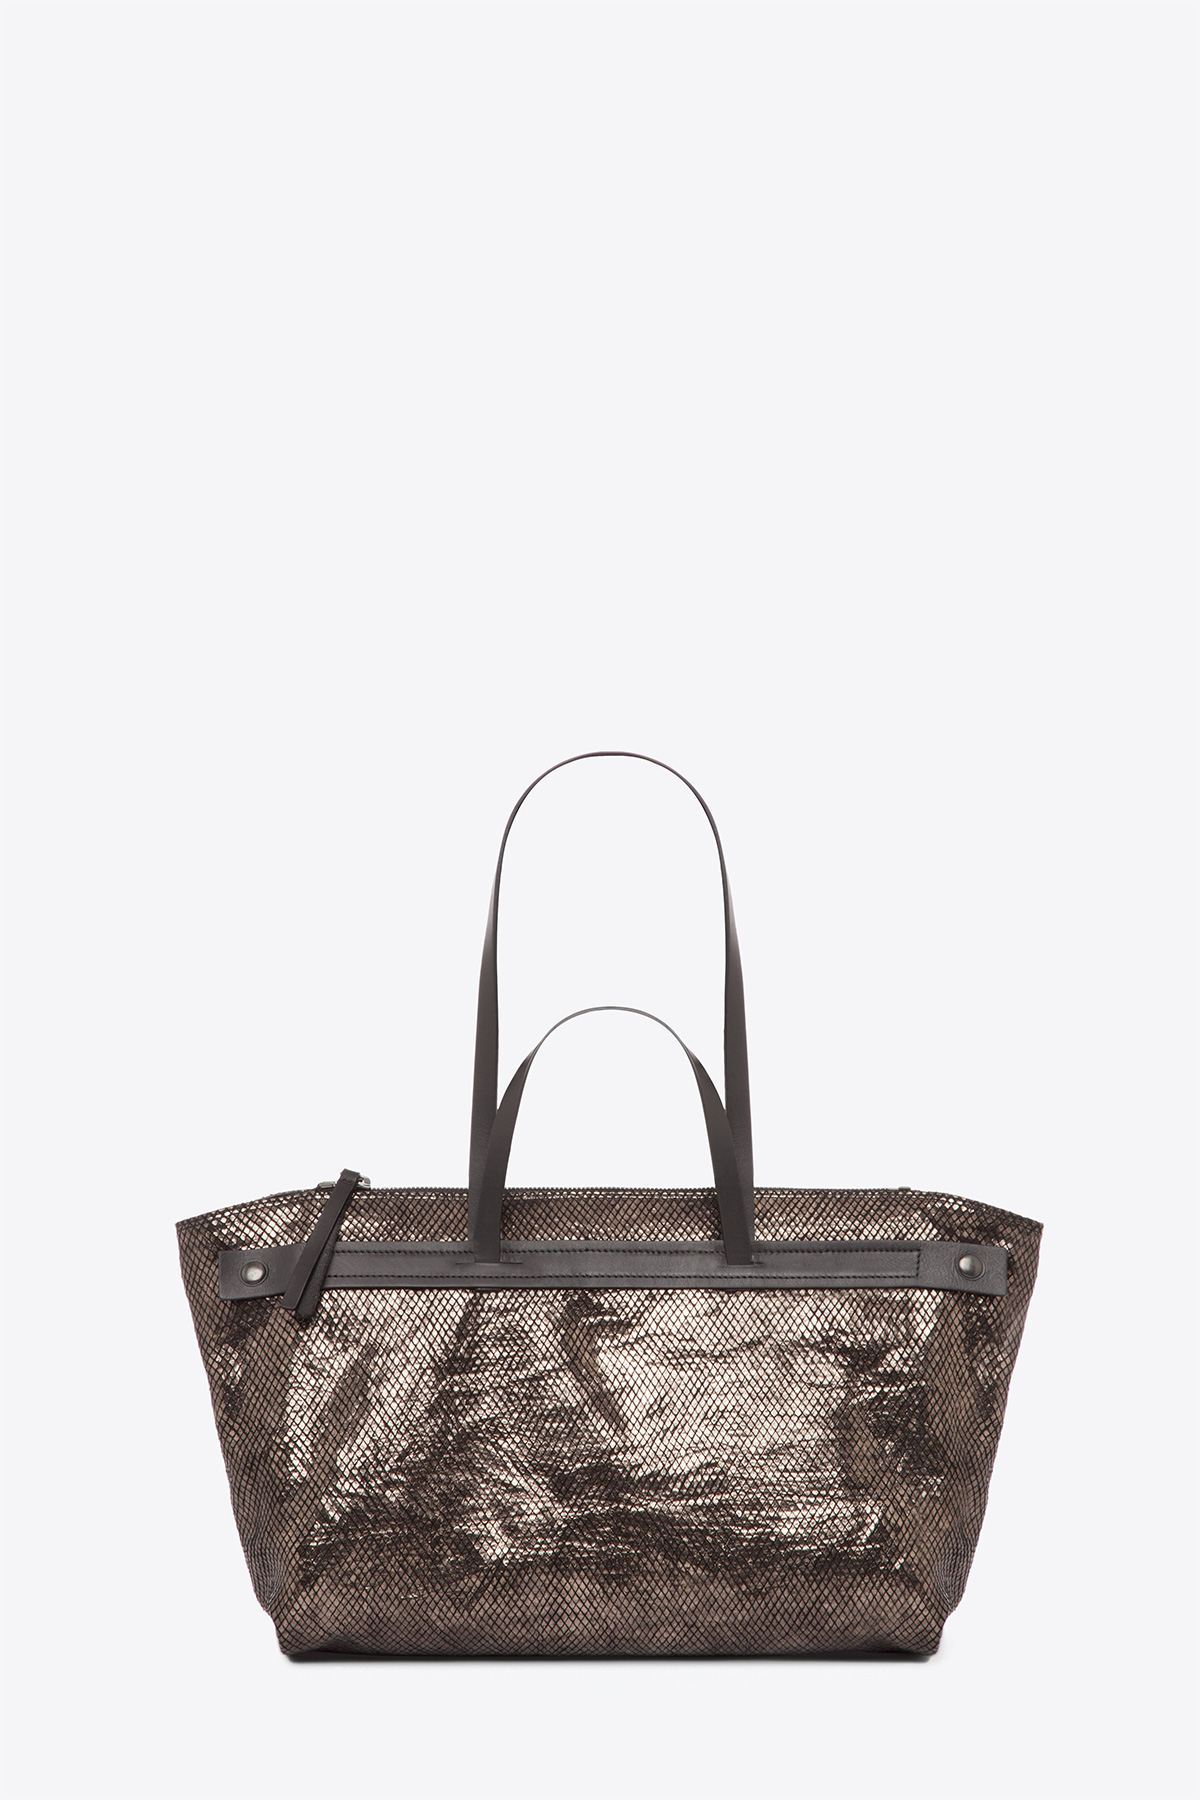 dclr007s-tote-a24-backsnakebronze-front2